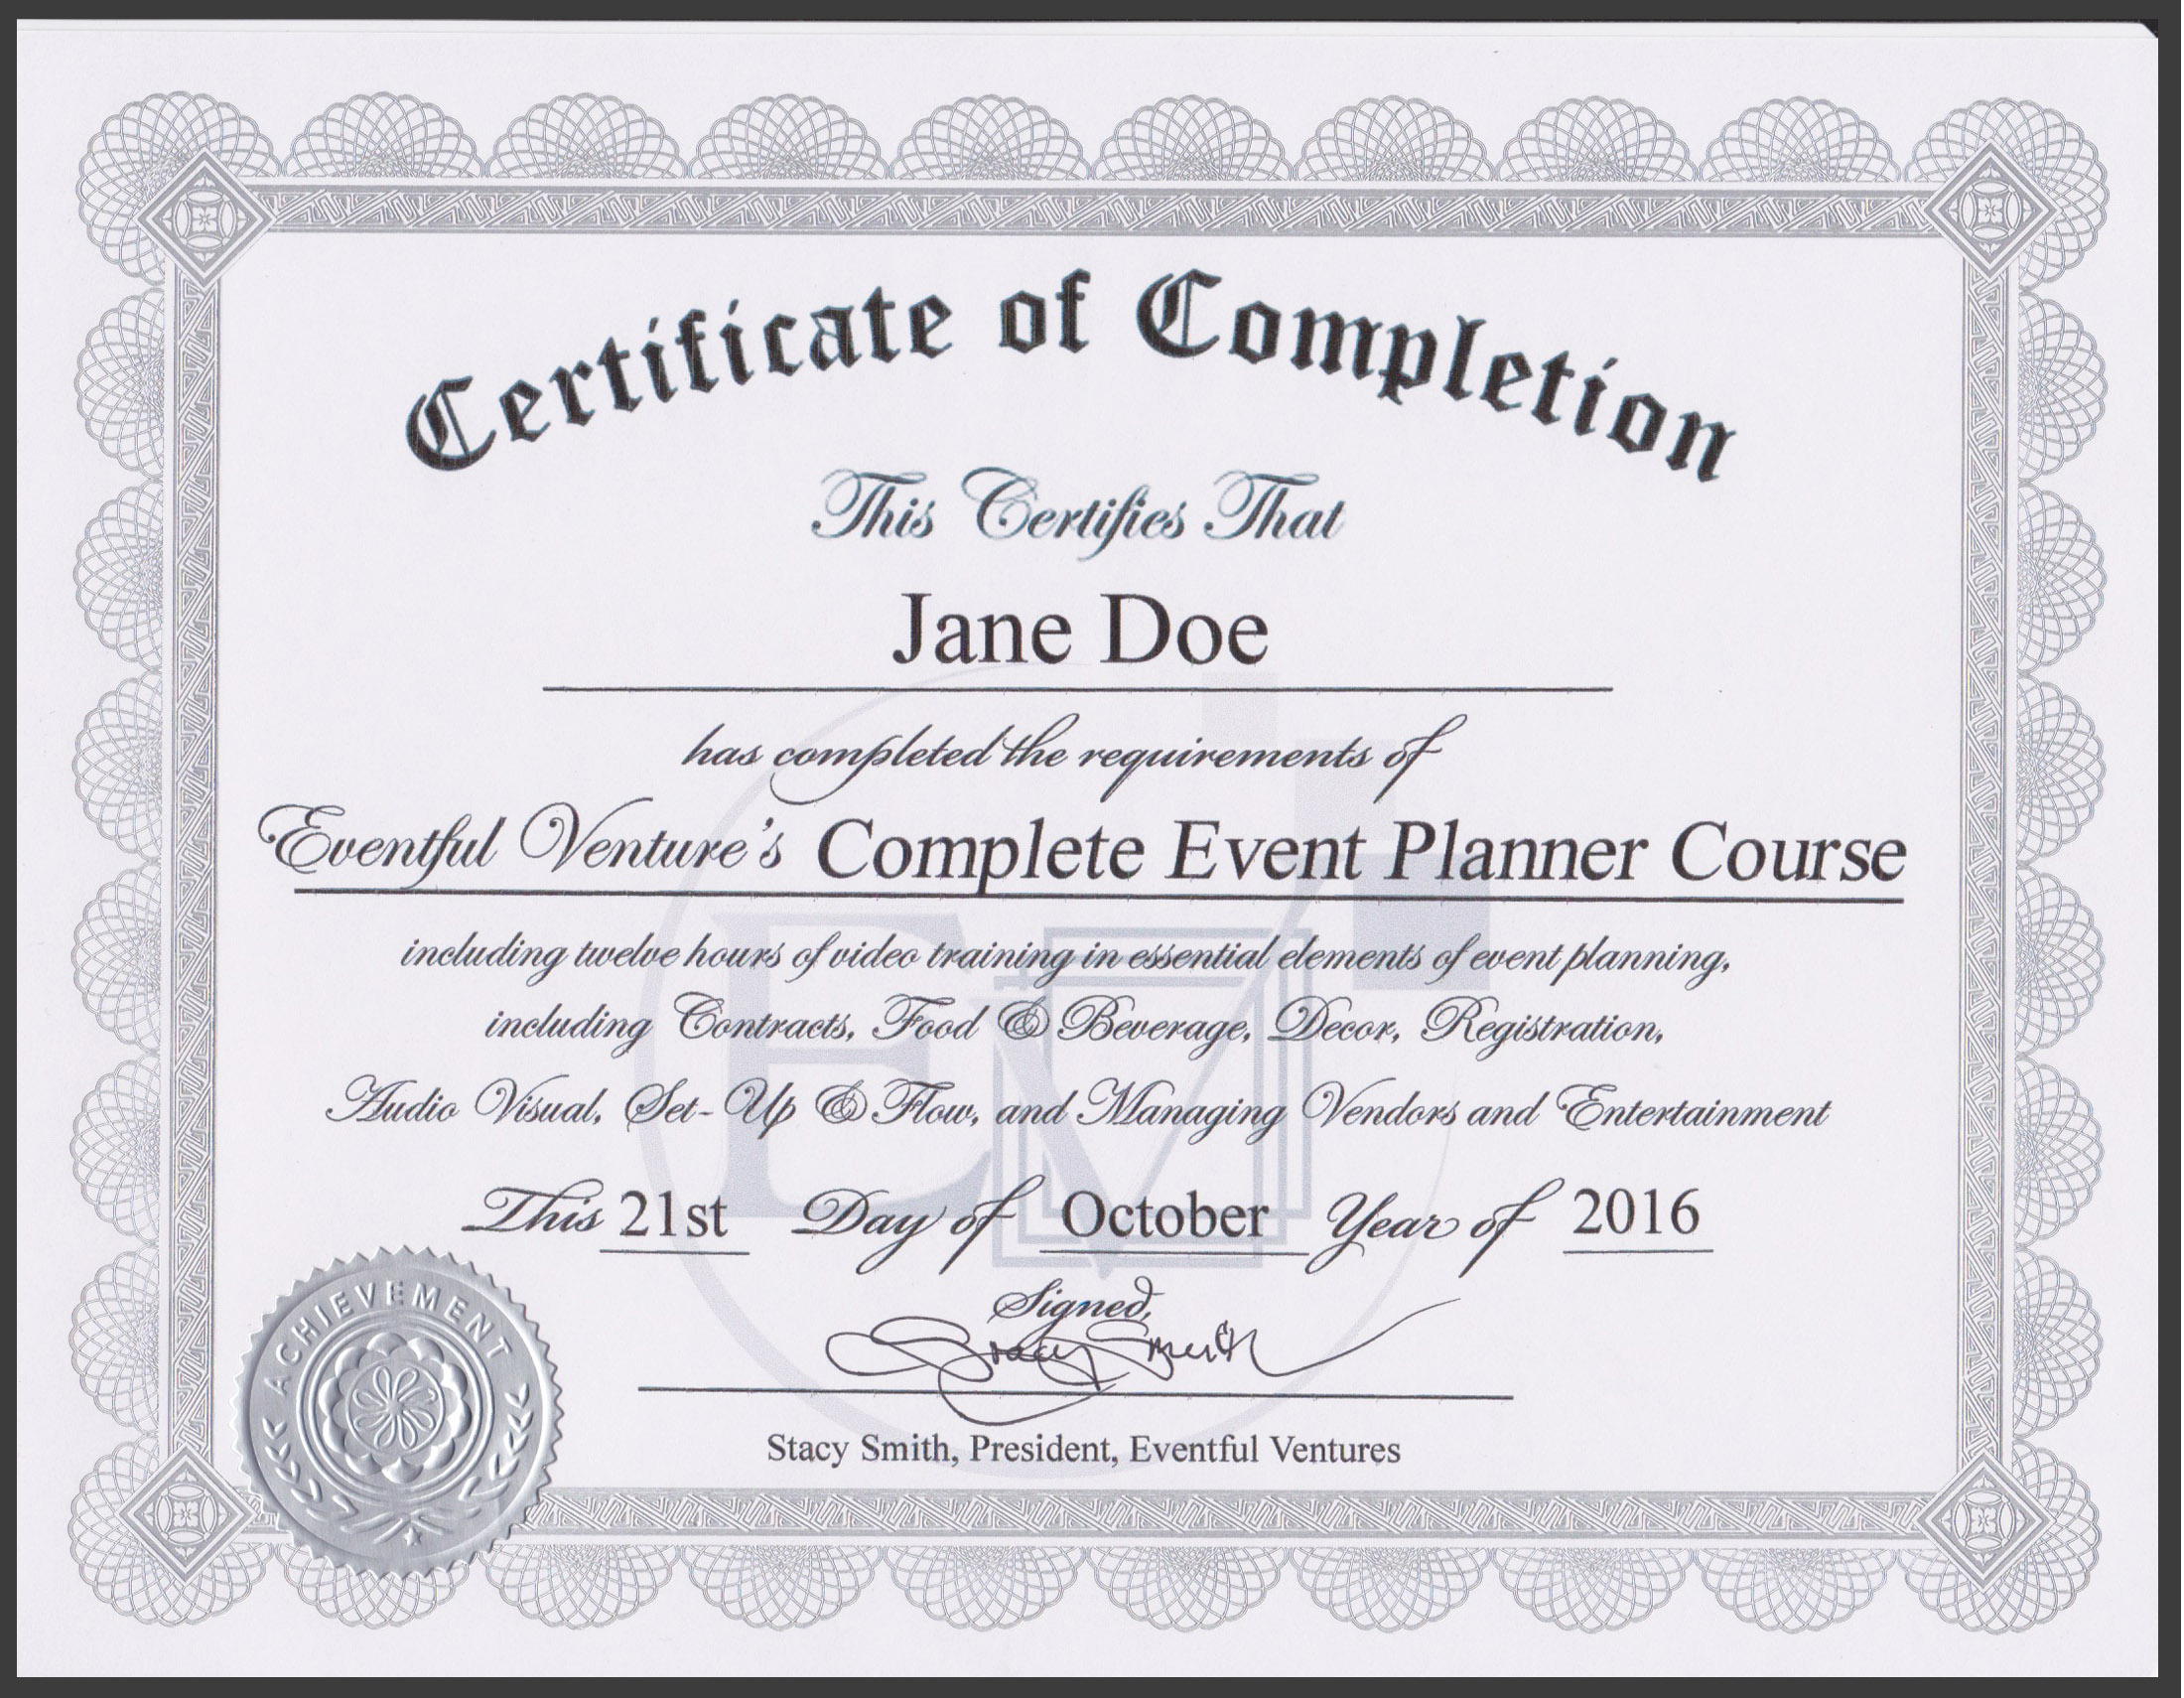 Image of an Event Planning Certificate